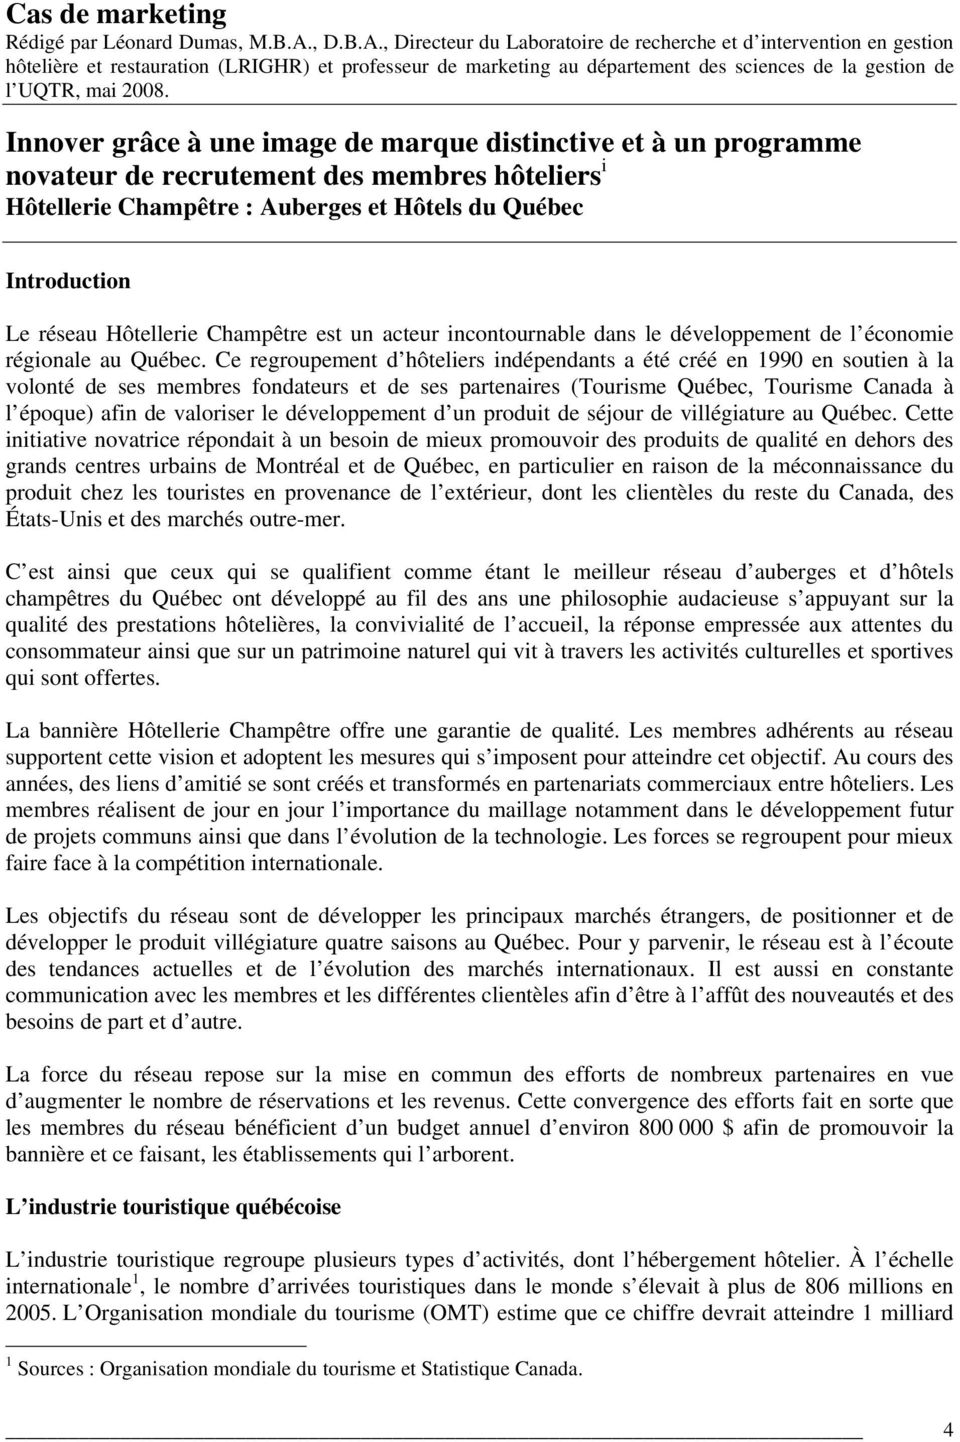 , Directeur du Laboratoire de recherche et d intervention en gestion hôtelière et restauration (LRIGHR) et professeur de marketing au département des sciences de la gestion de l UQTR, mai 2008.